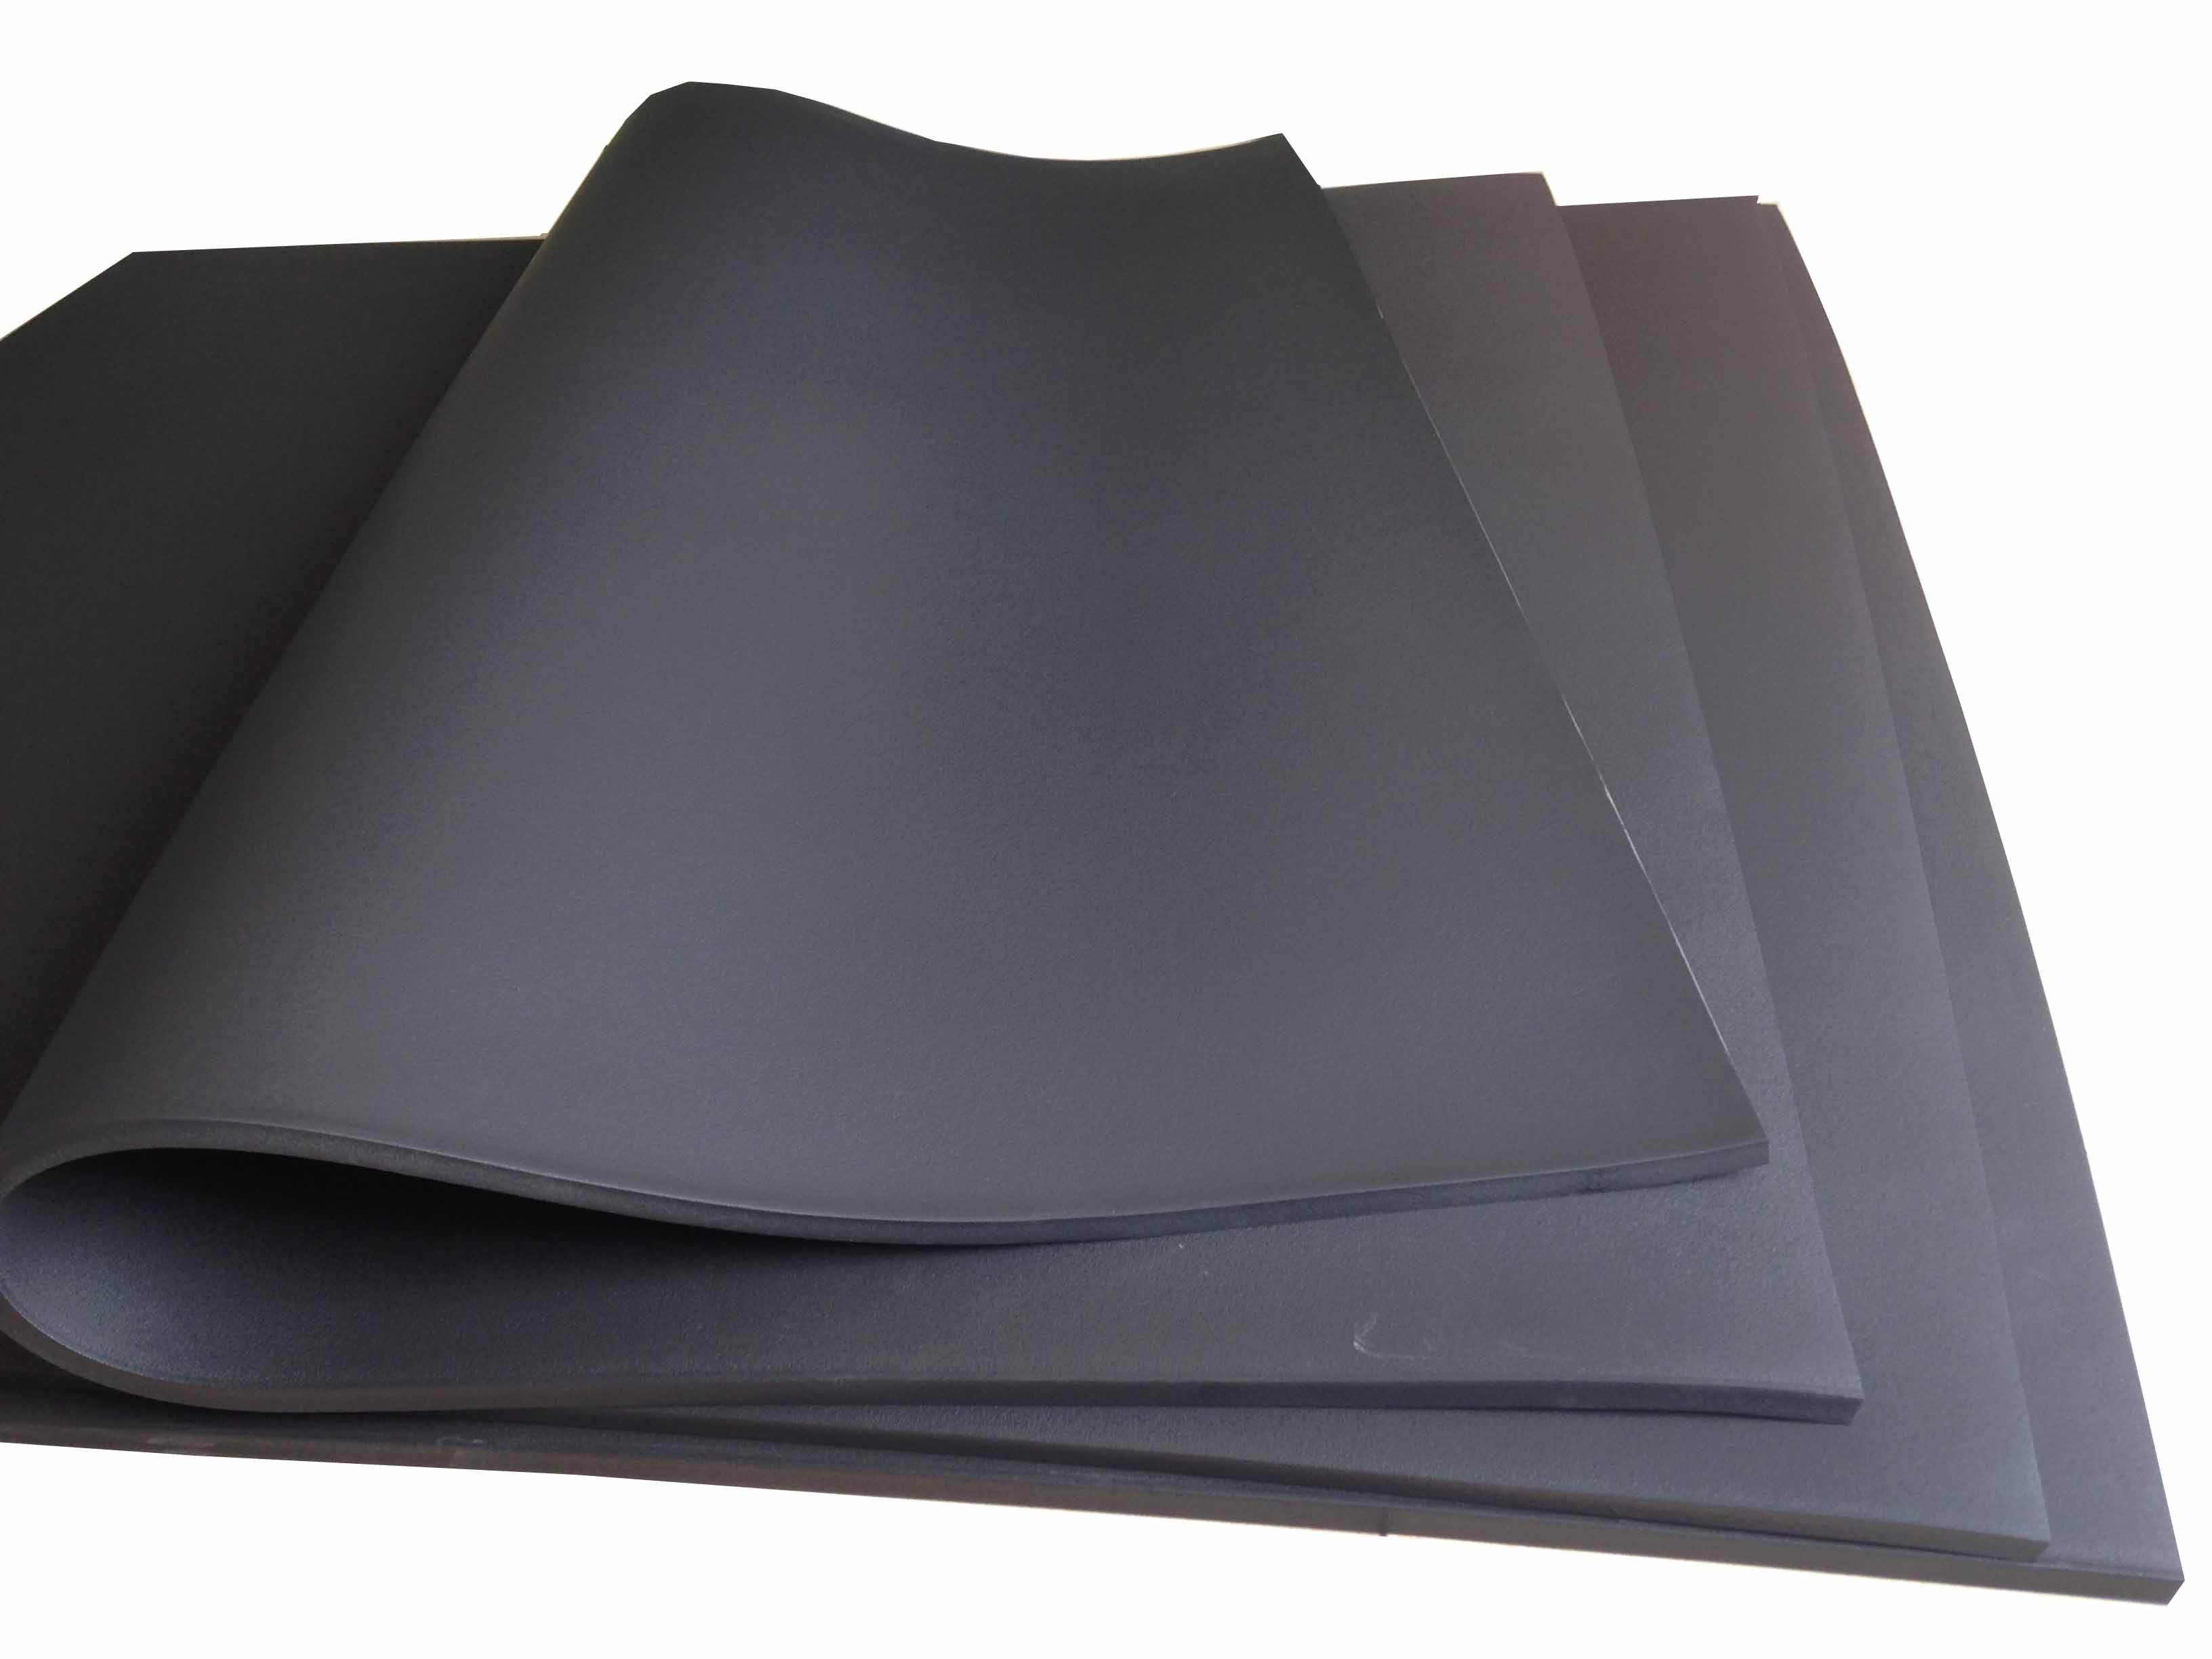 Elastomeric Foam Rubber Thermal Insulation - Buy Roof Heat Reflective  Material,Roof Heat Reflective Material,Heat Resistant Materials Product on  Alibaba.com